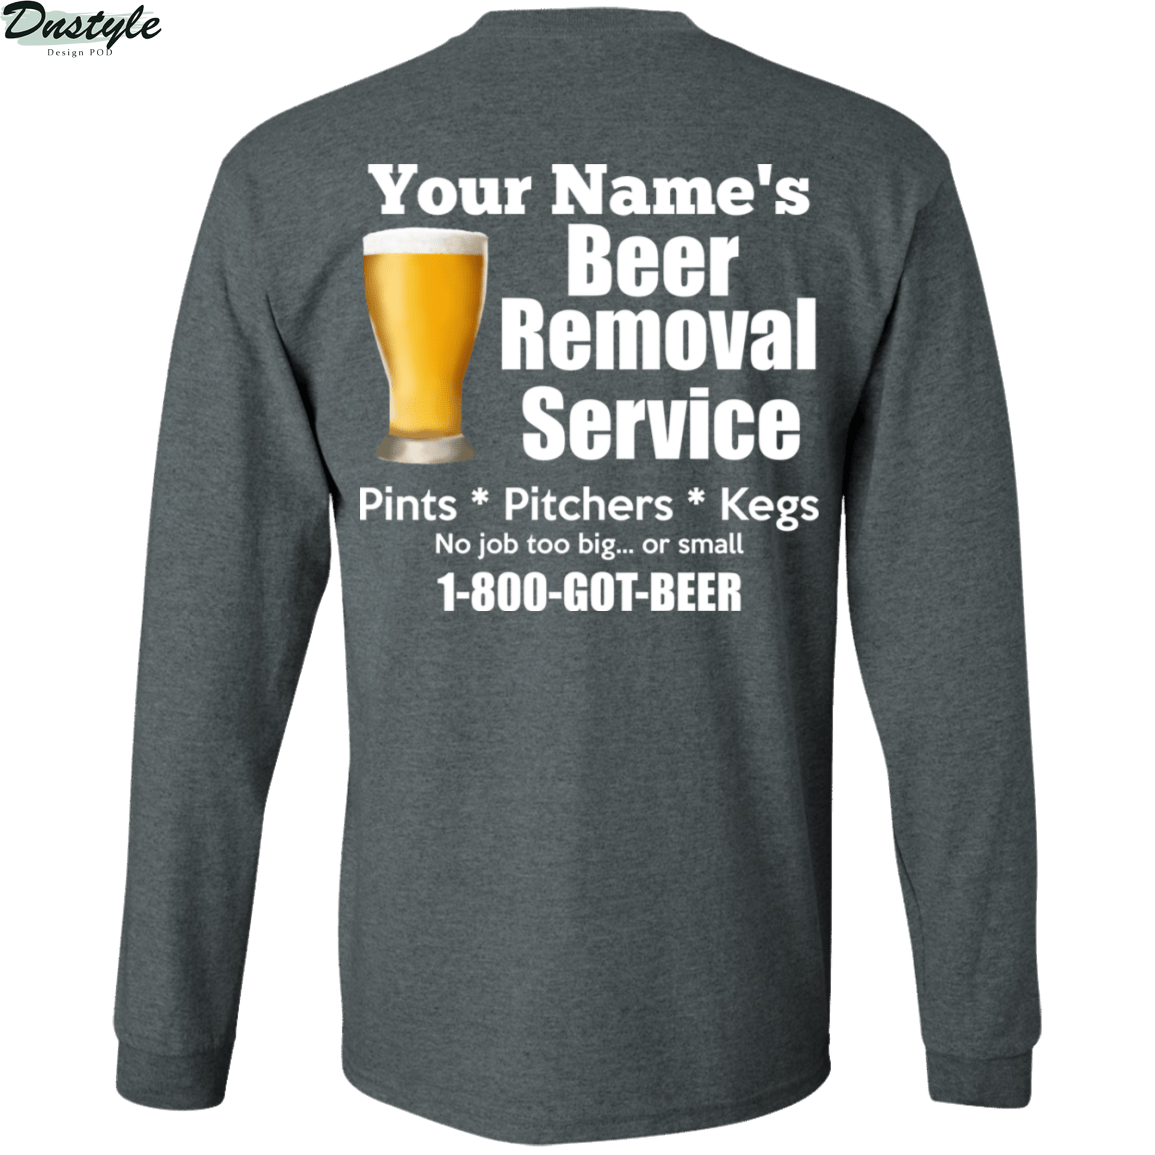 Personalized custom name beer removal service pints pitchers kegs shirt 2